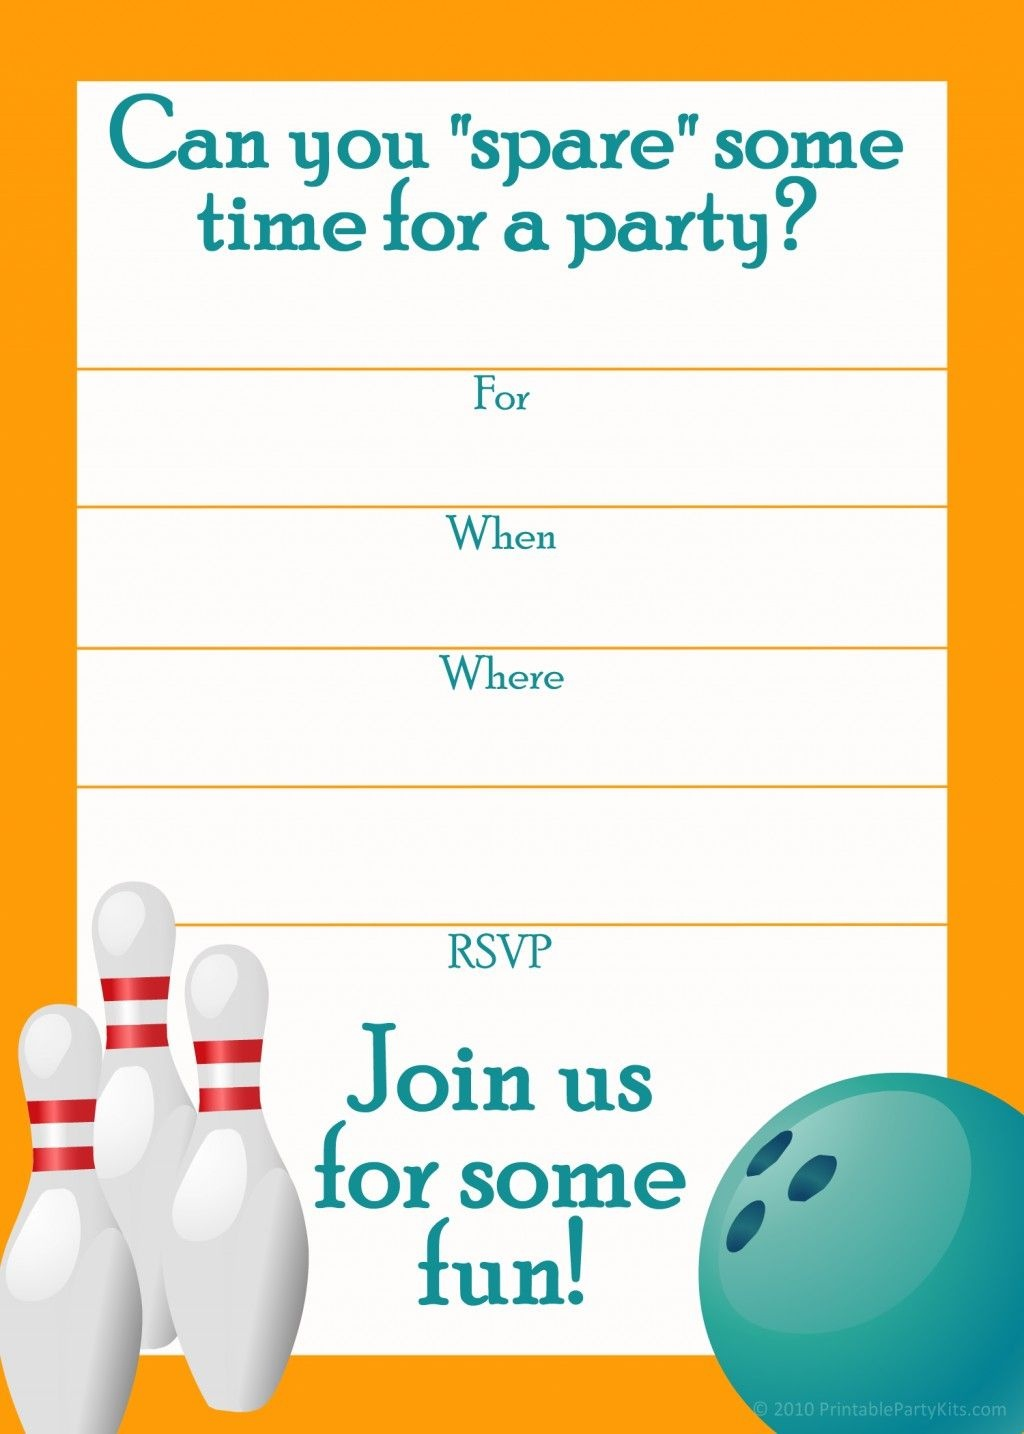 Free Printable Sports Birthday Party Invitations Templates | Dakota - Free Printable Bowling Invitation Templates